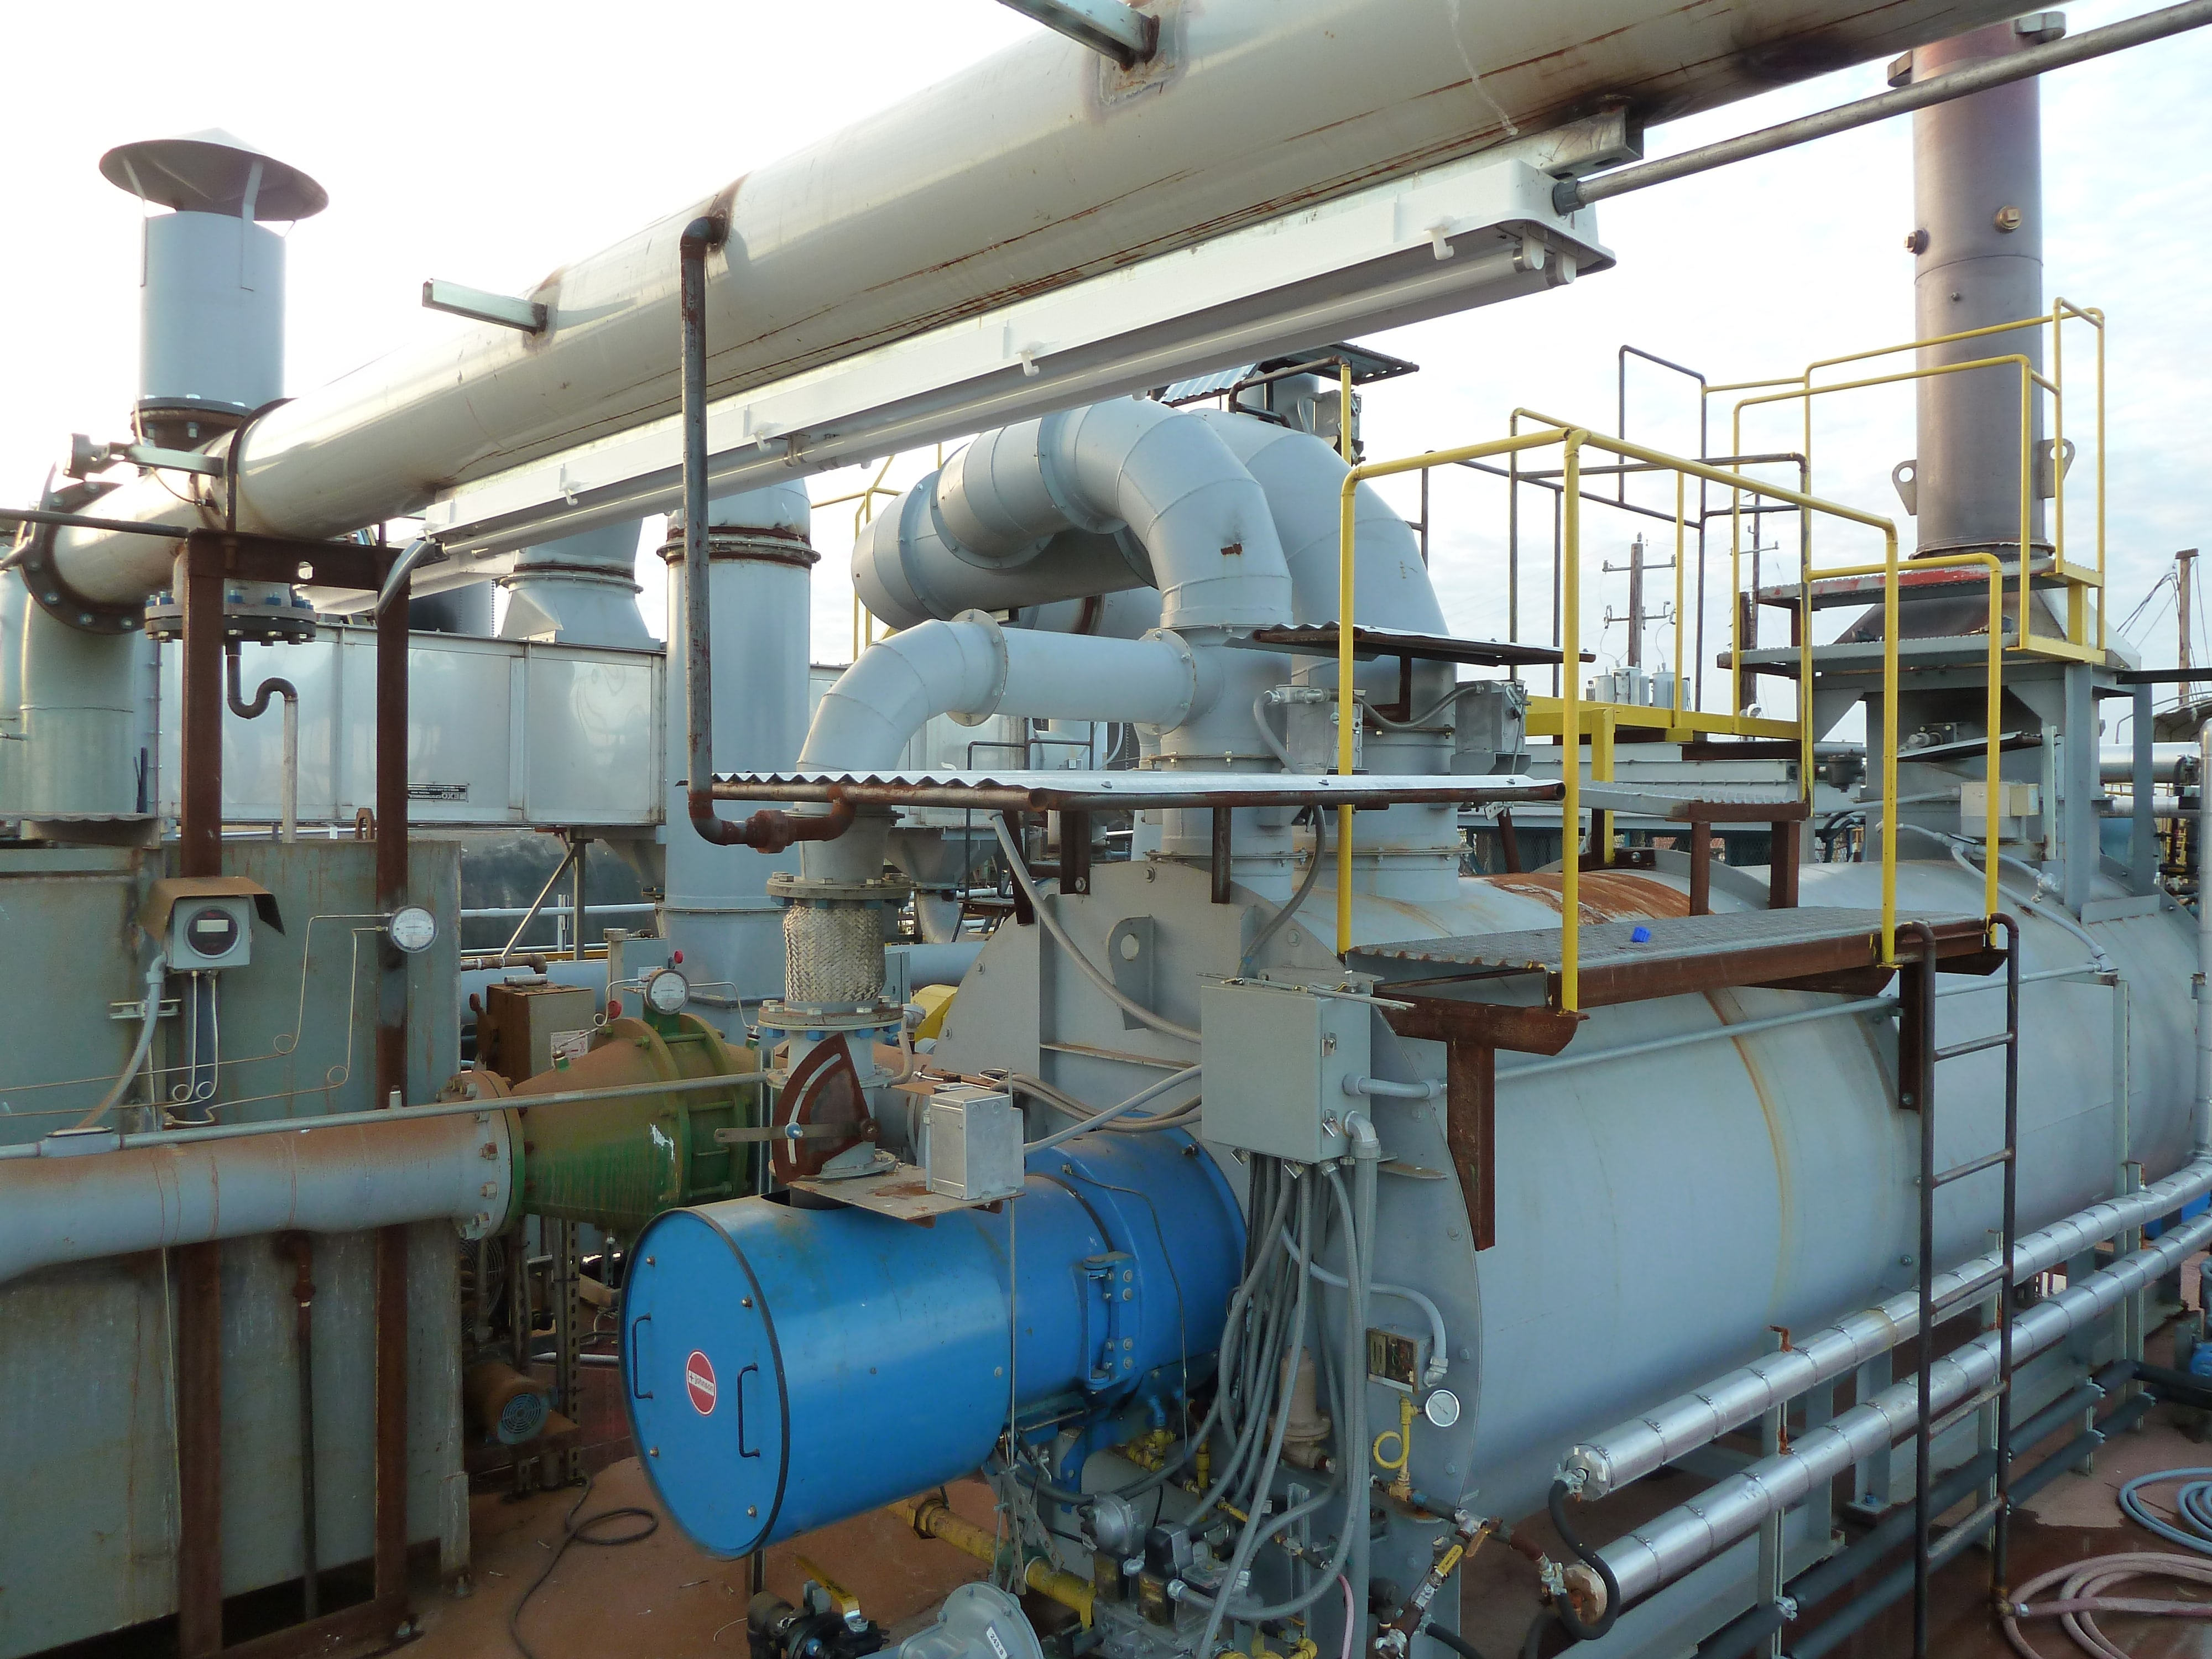 Steam Generating Thermal Oxidizer for Plants